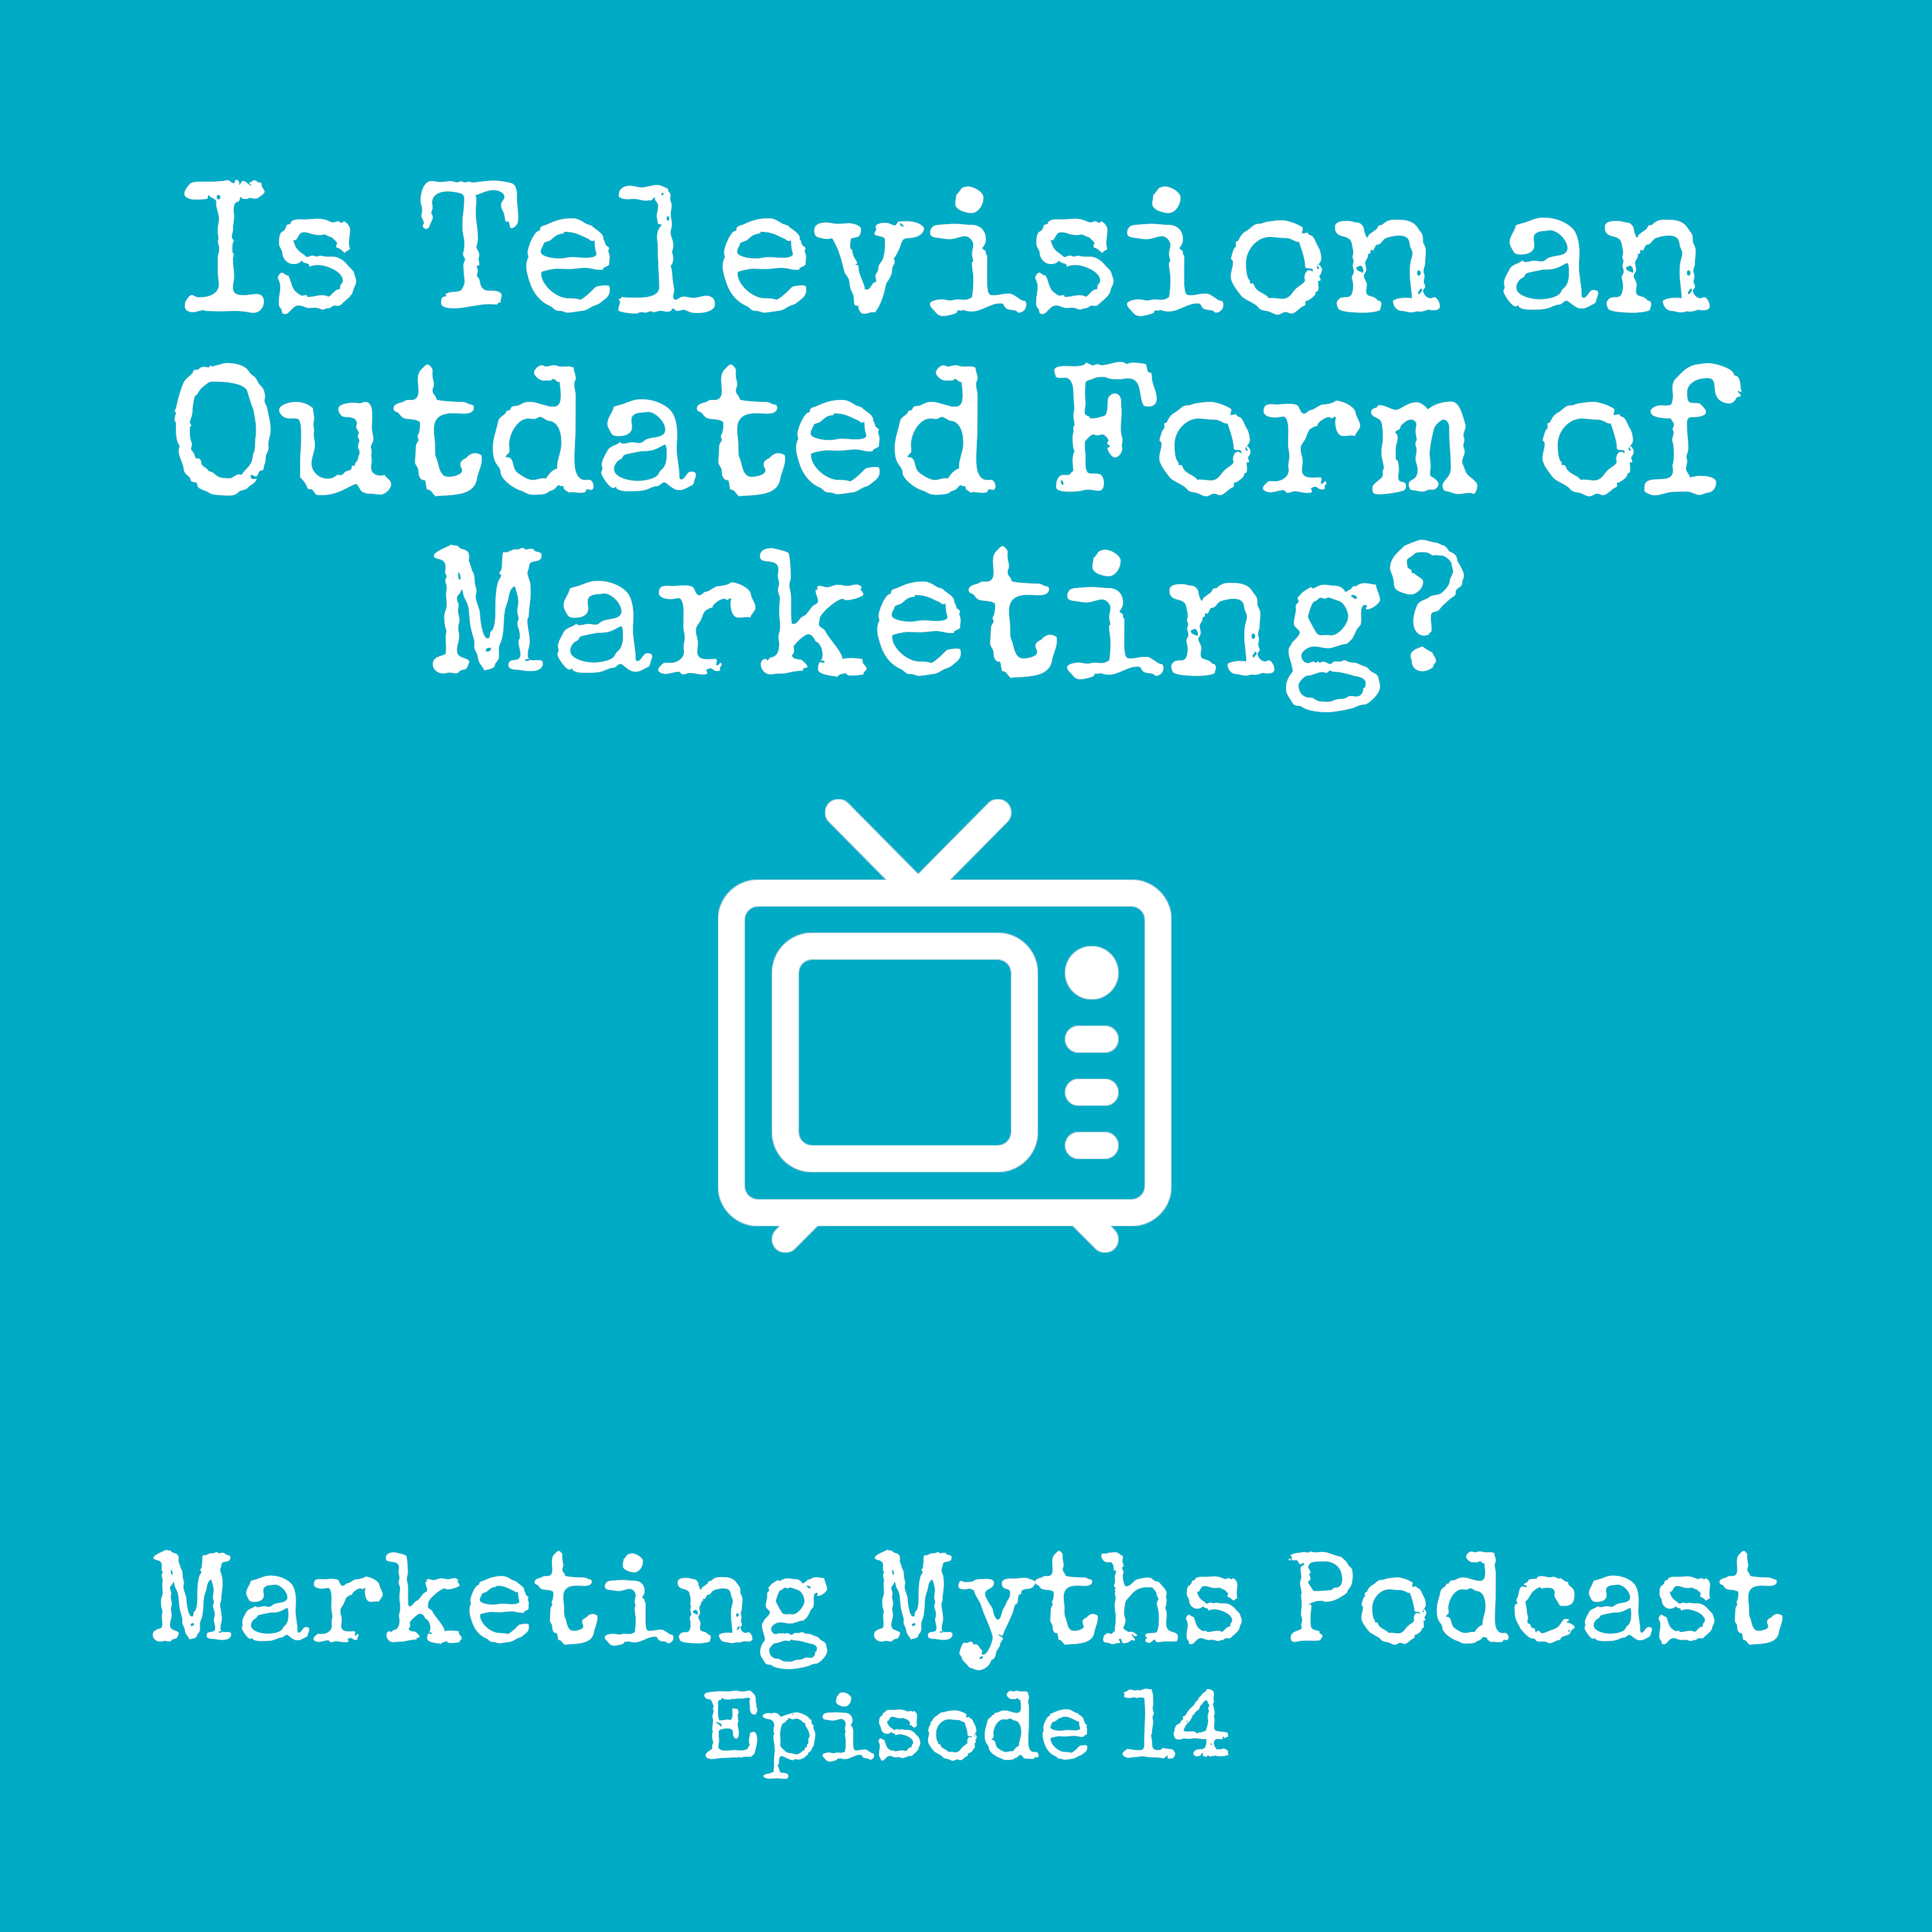 Is Television an Outdated Form of Marketing?